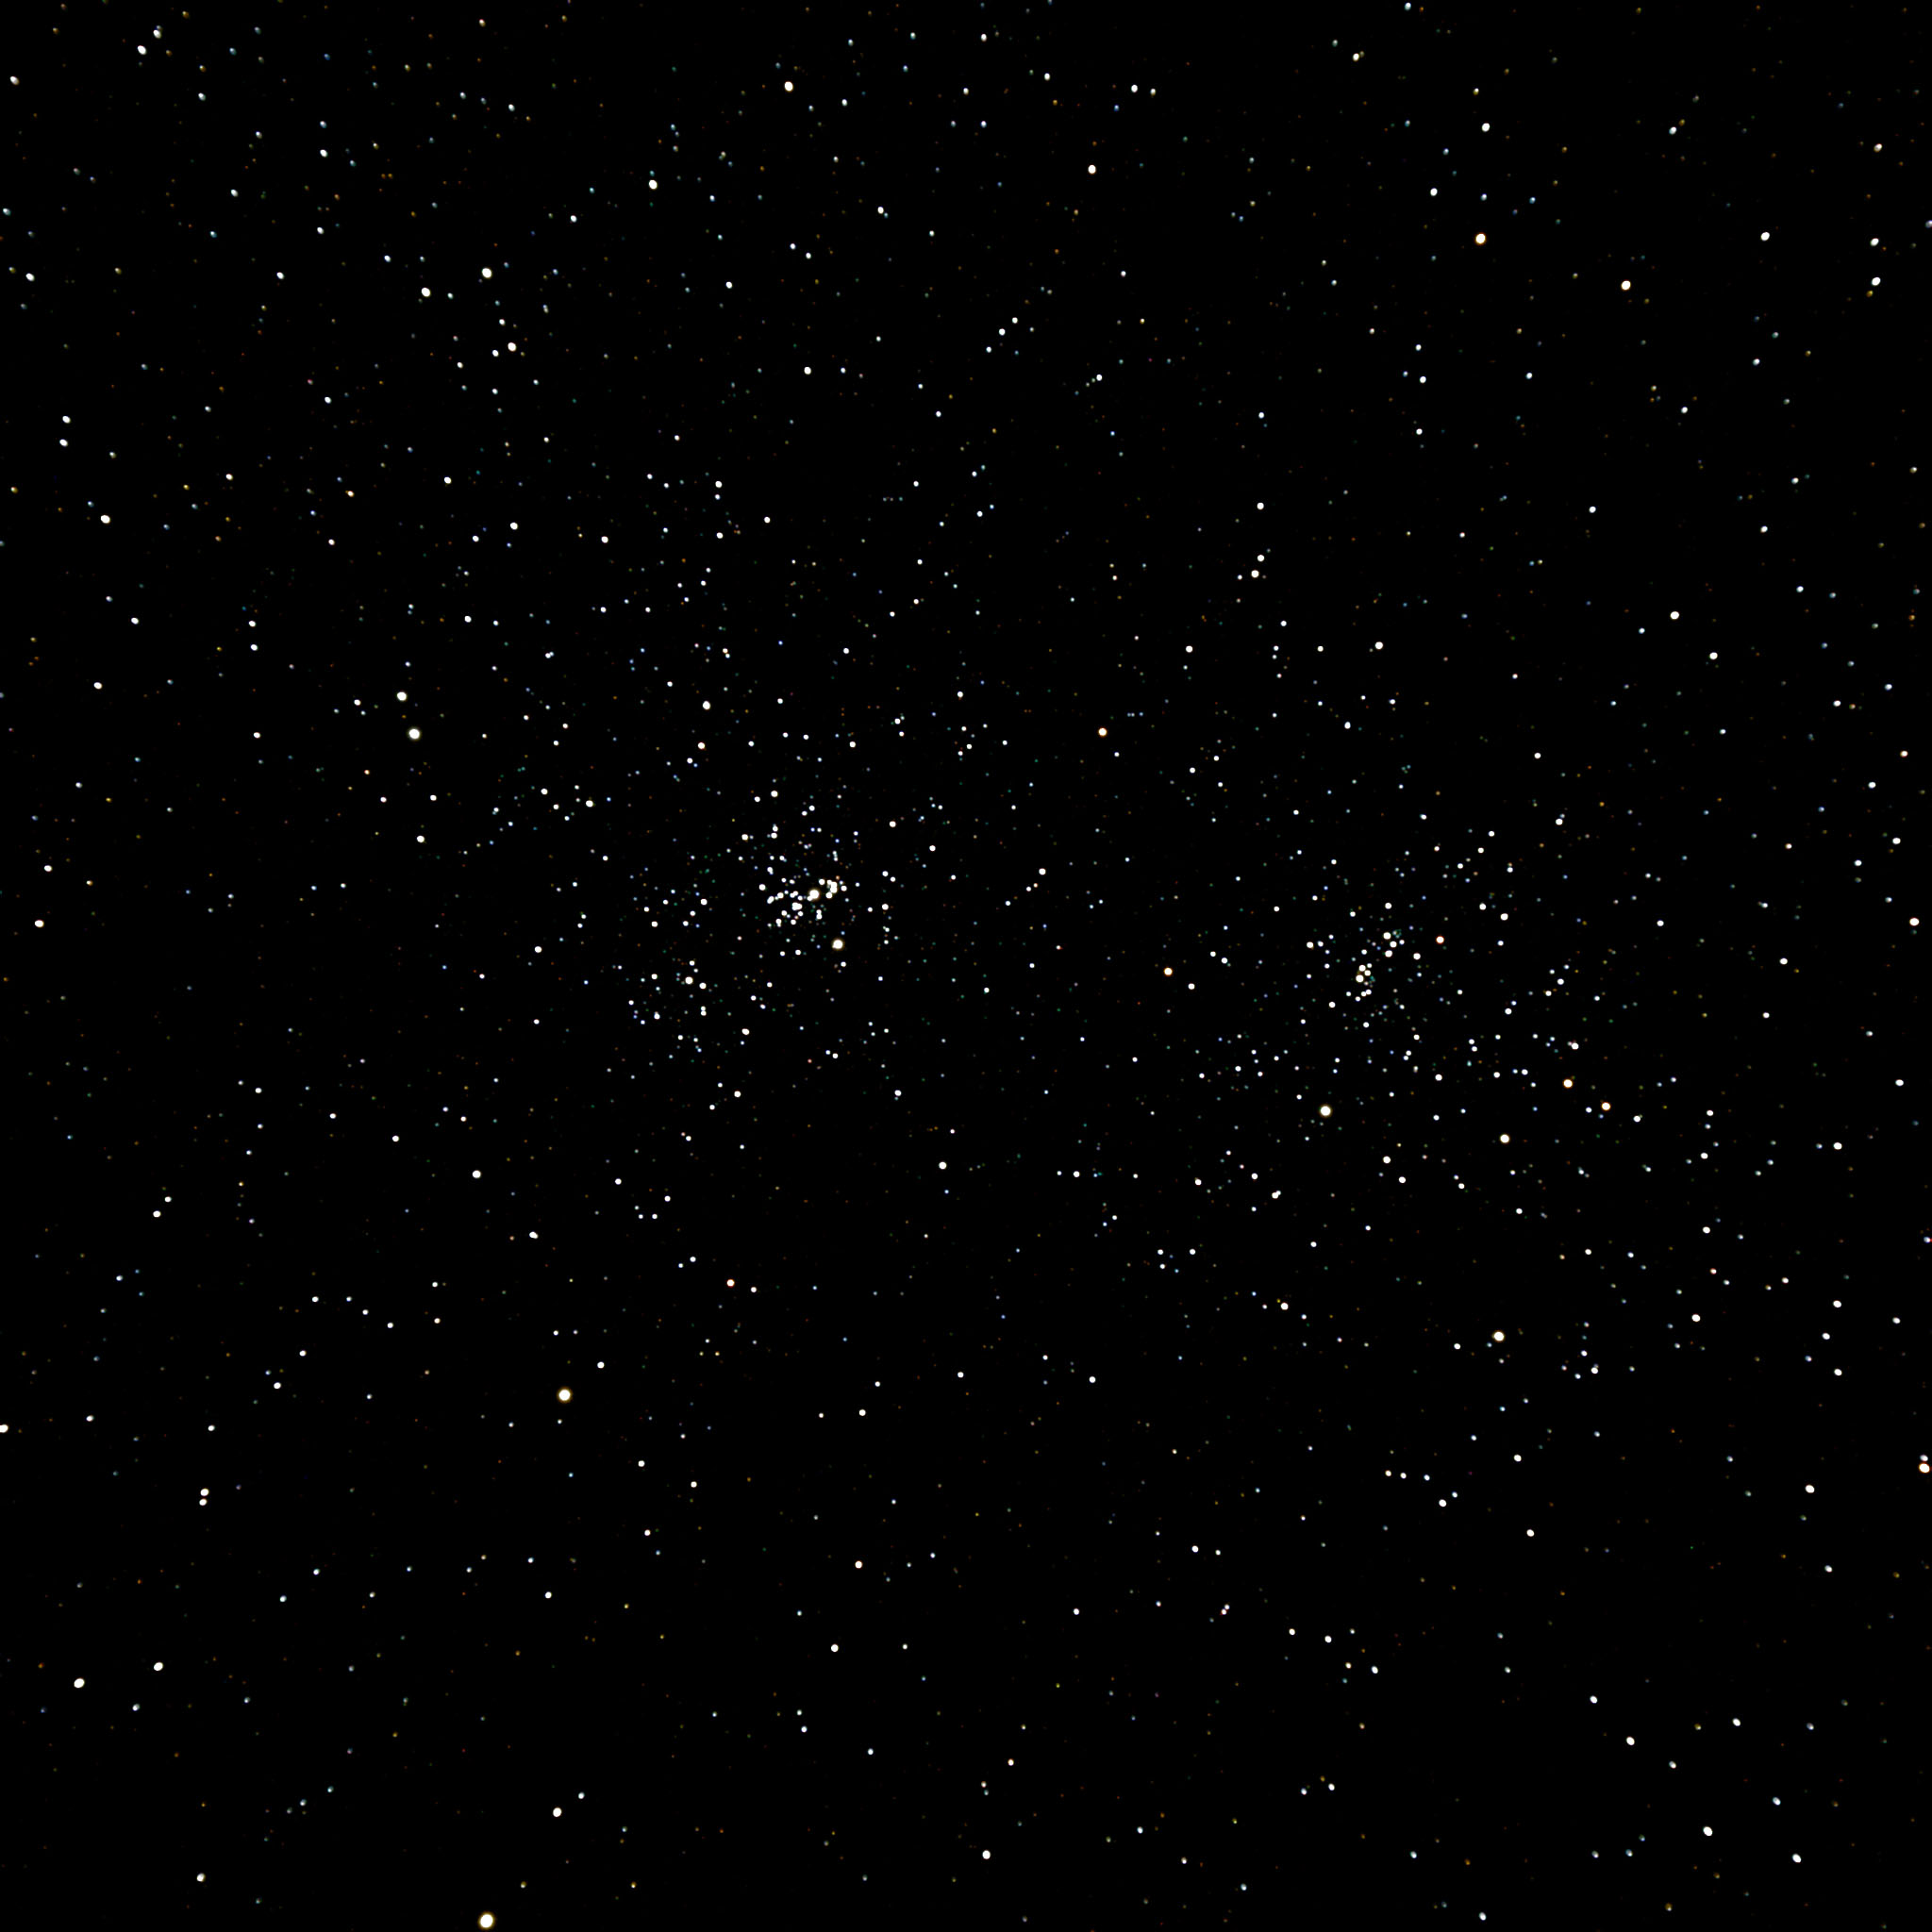 Dark Sky With Stars Wallpaper Images Pictures   Becuo 2048x2048